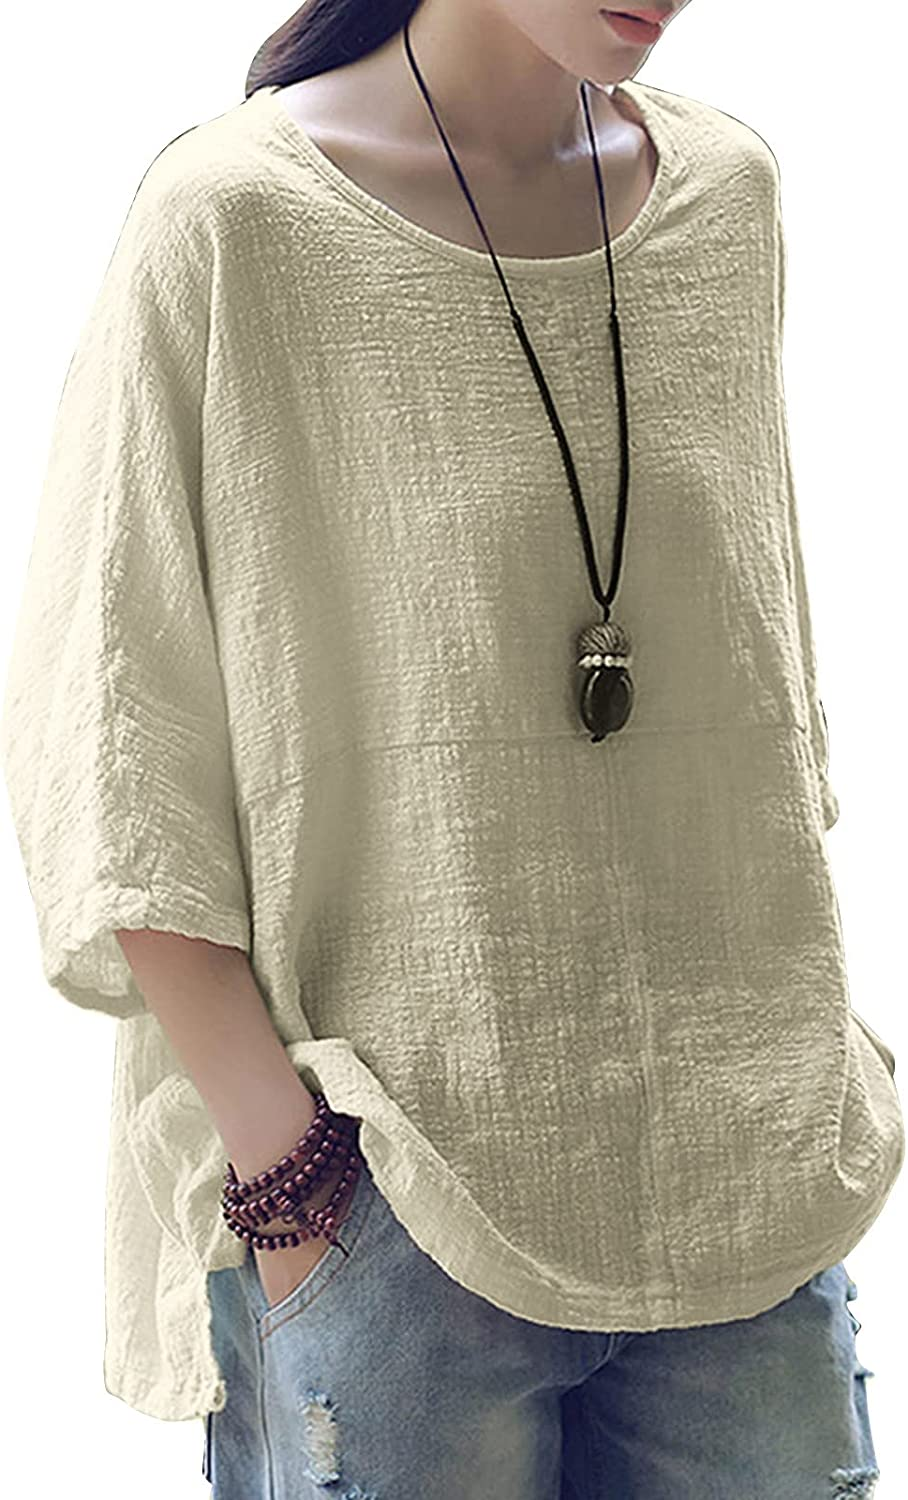 Women Cotton Linen Tops Plus Size 3/4 Vintage Tees Loose Solid Color Shirt Boatneck Tunic Blouses Summer T-Shits